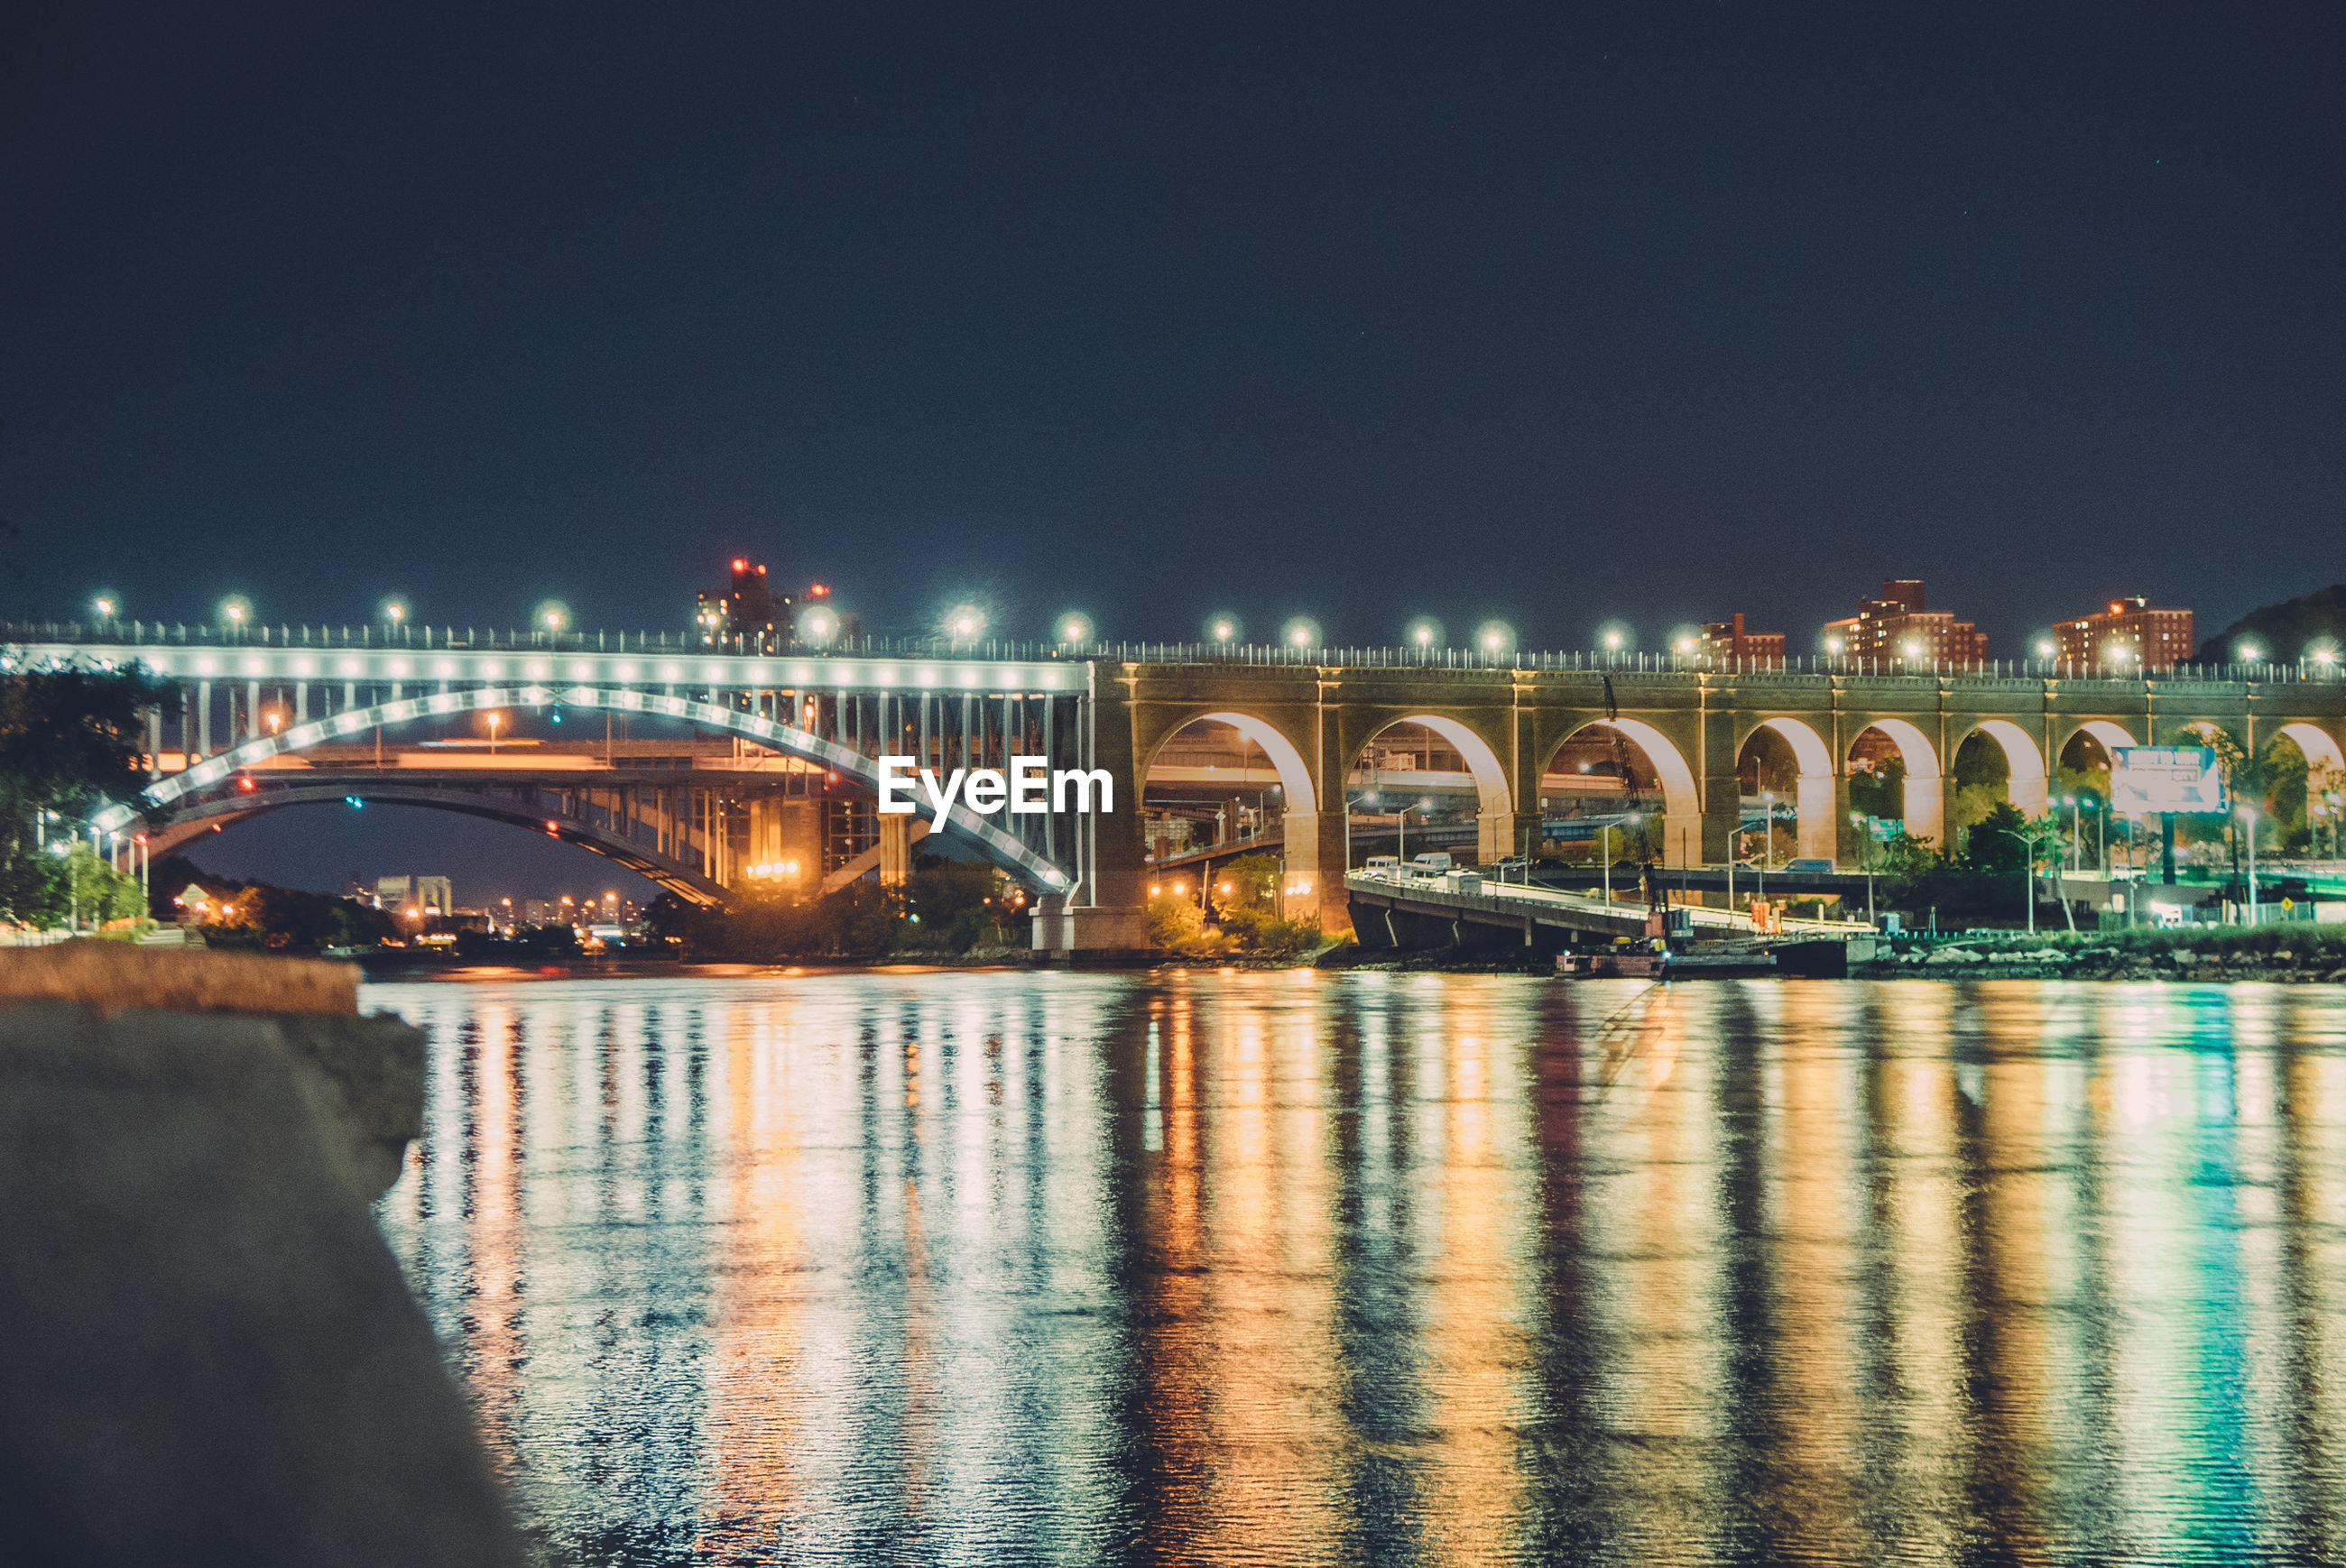 connection, bridge - man made structure, architecture, built structure, water, illuminated, waterfront, river, night, reflection, engineering, bridge, arch bridge, arch, building exterior, city, calm, rippled, tranquility, water surface, city life, travel destinations, tranquil scene, scenics, outdoors, dark, sky, famous place